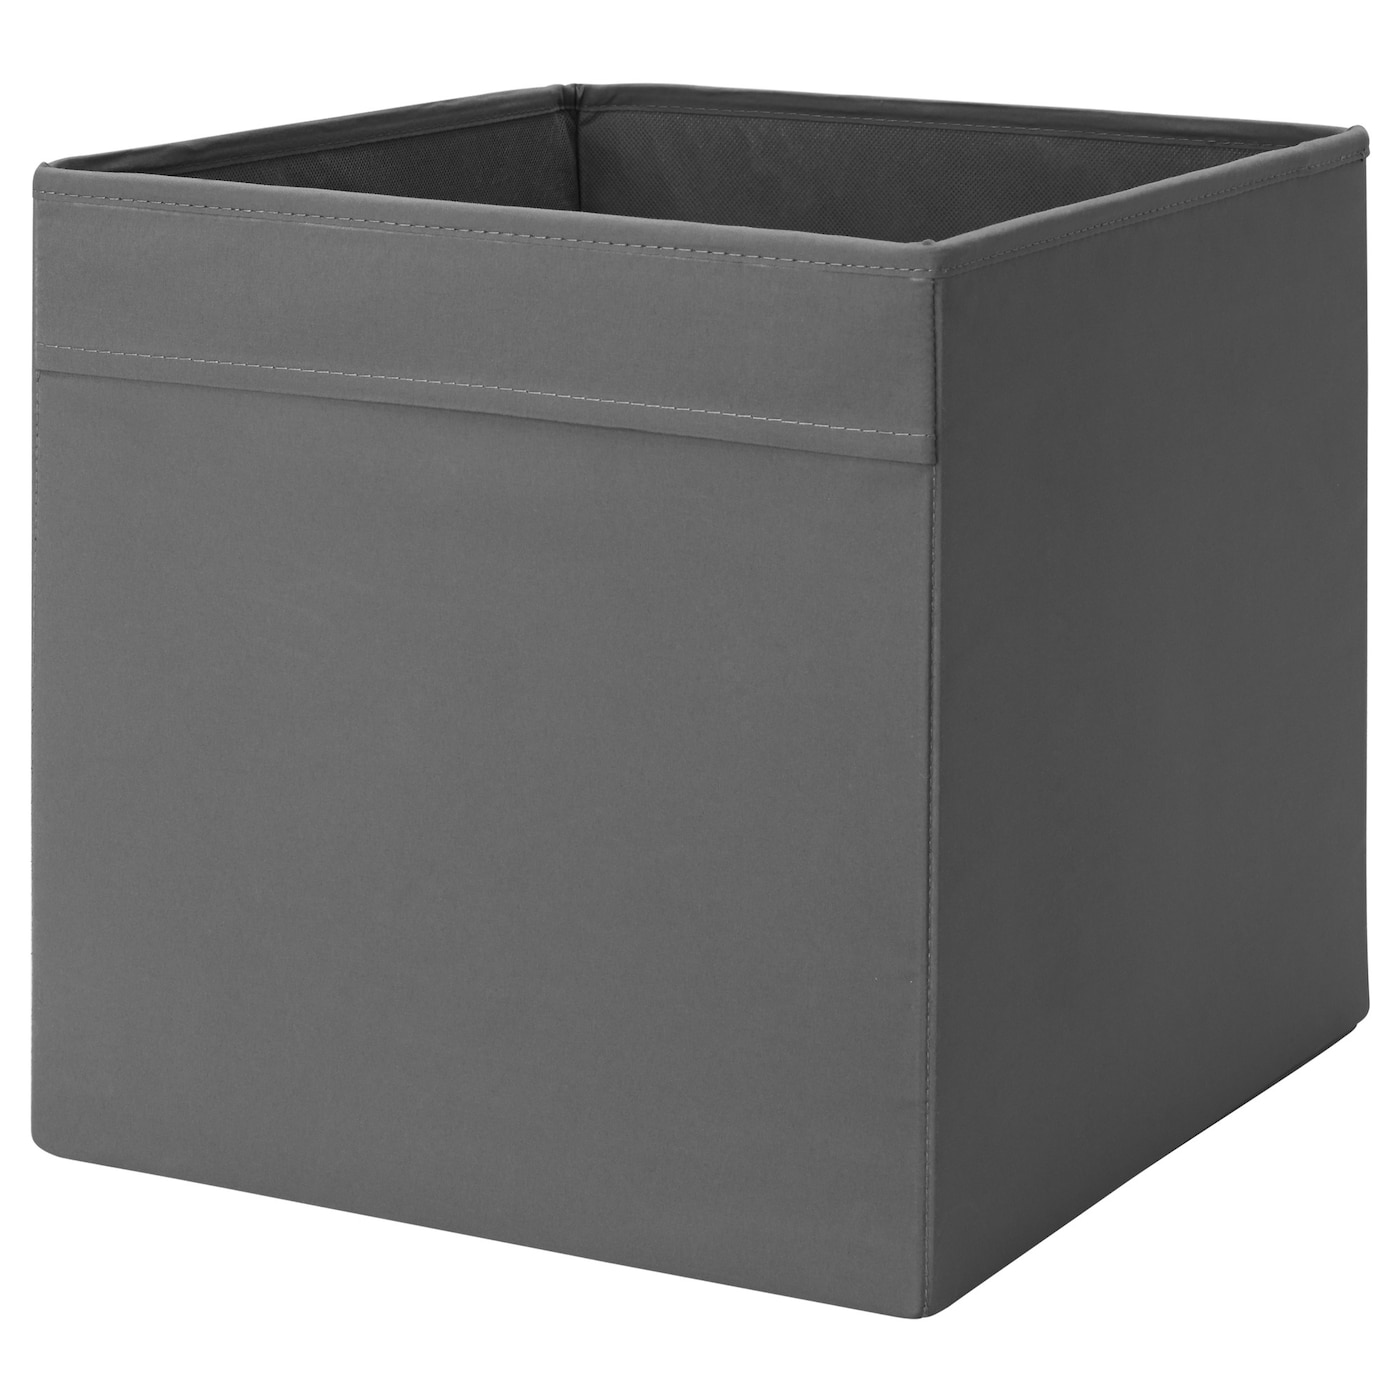 dr na box dark grey 33x38x33 cm ikea. Black Bedroom Furniture Sets. Home Design Ideas